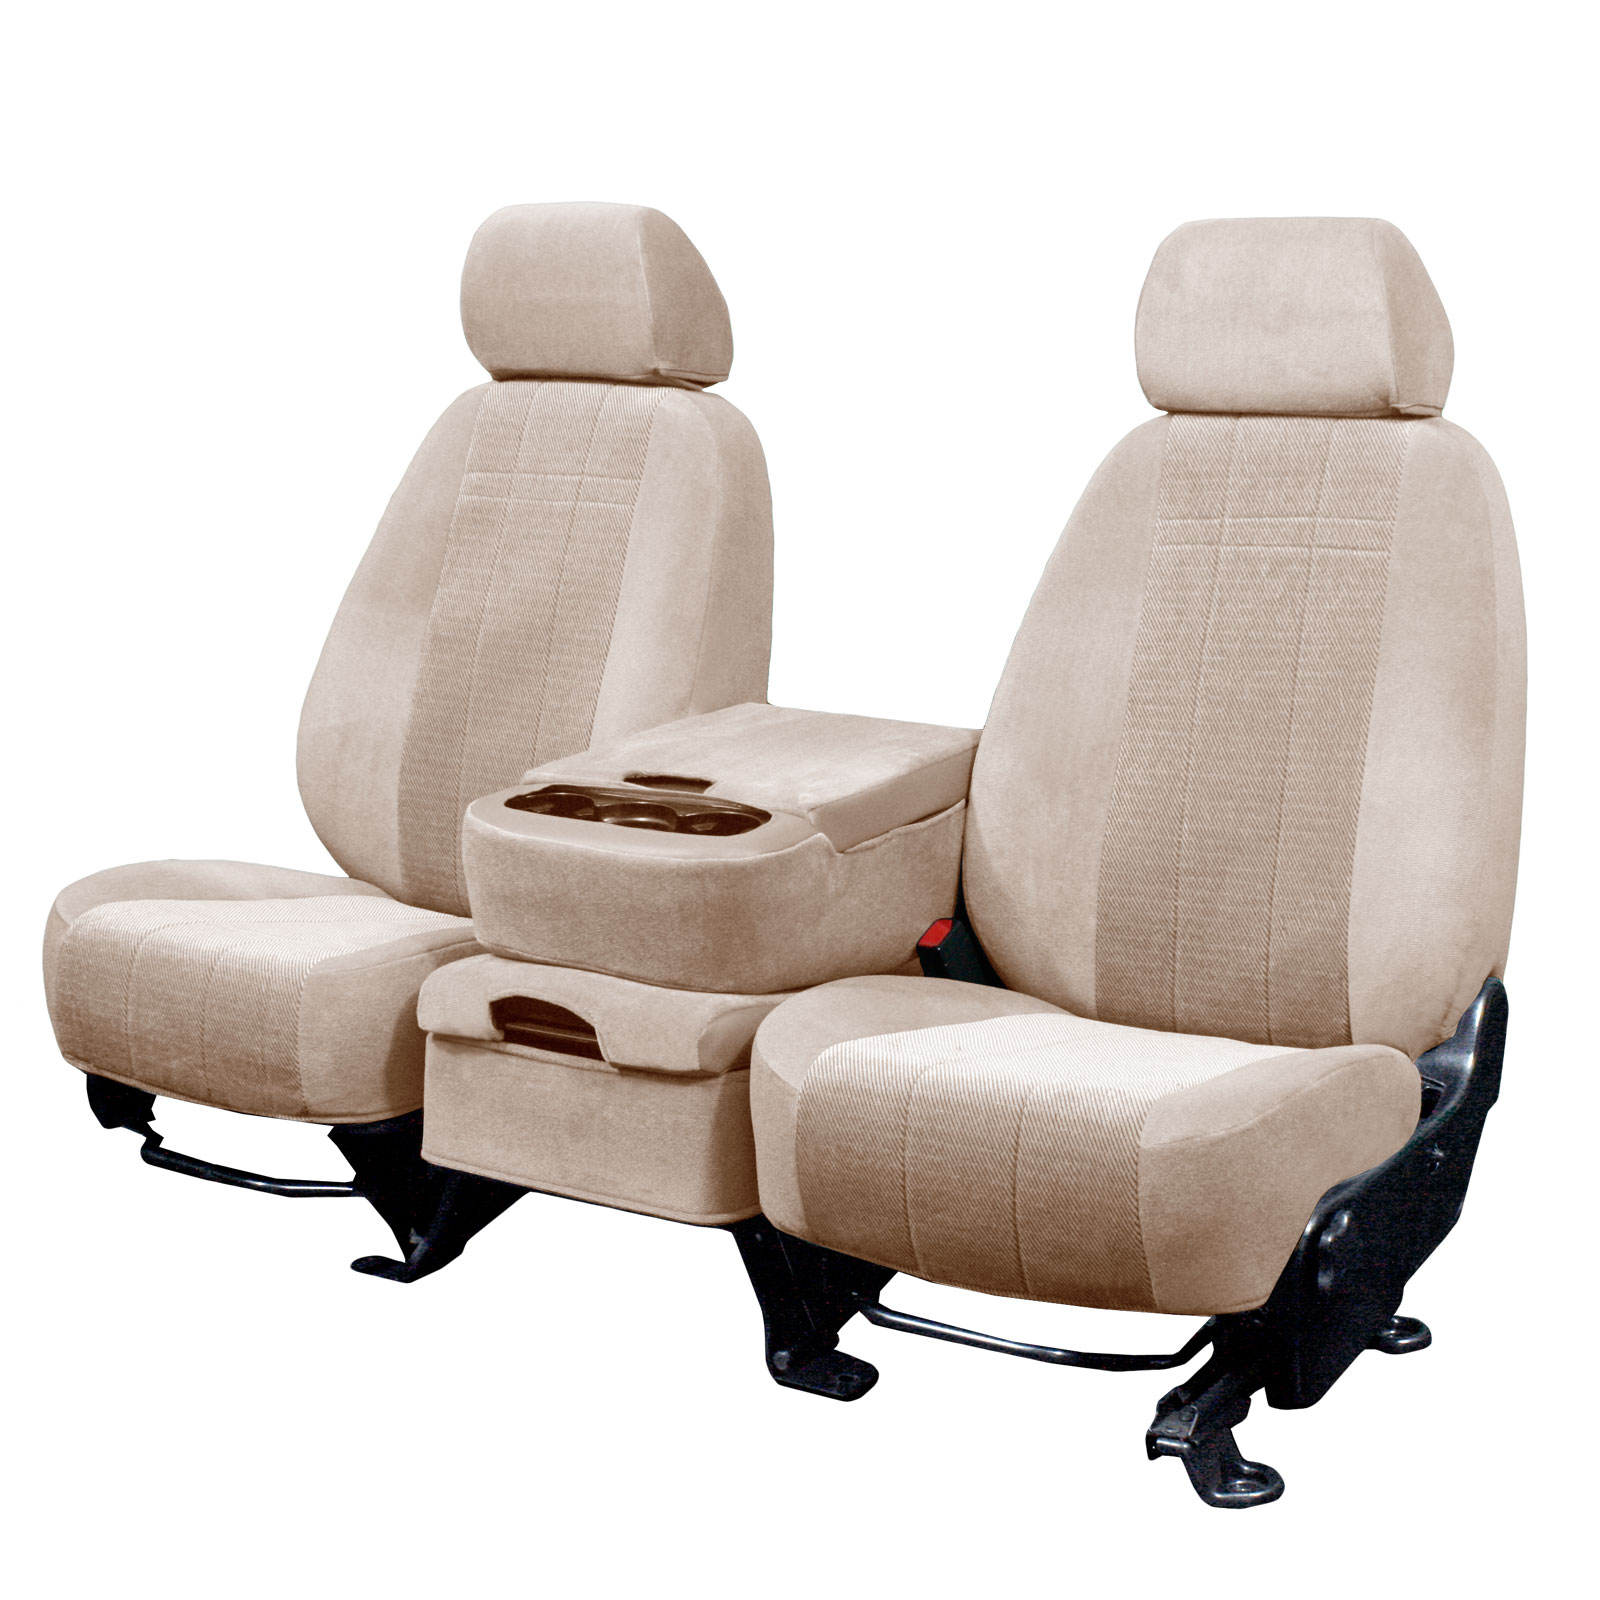 chair cover velour swinging lounge seat covers cars trucks suvs made in america